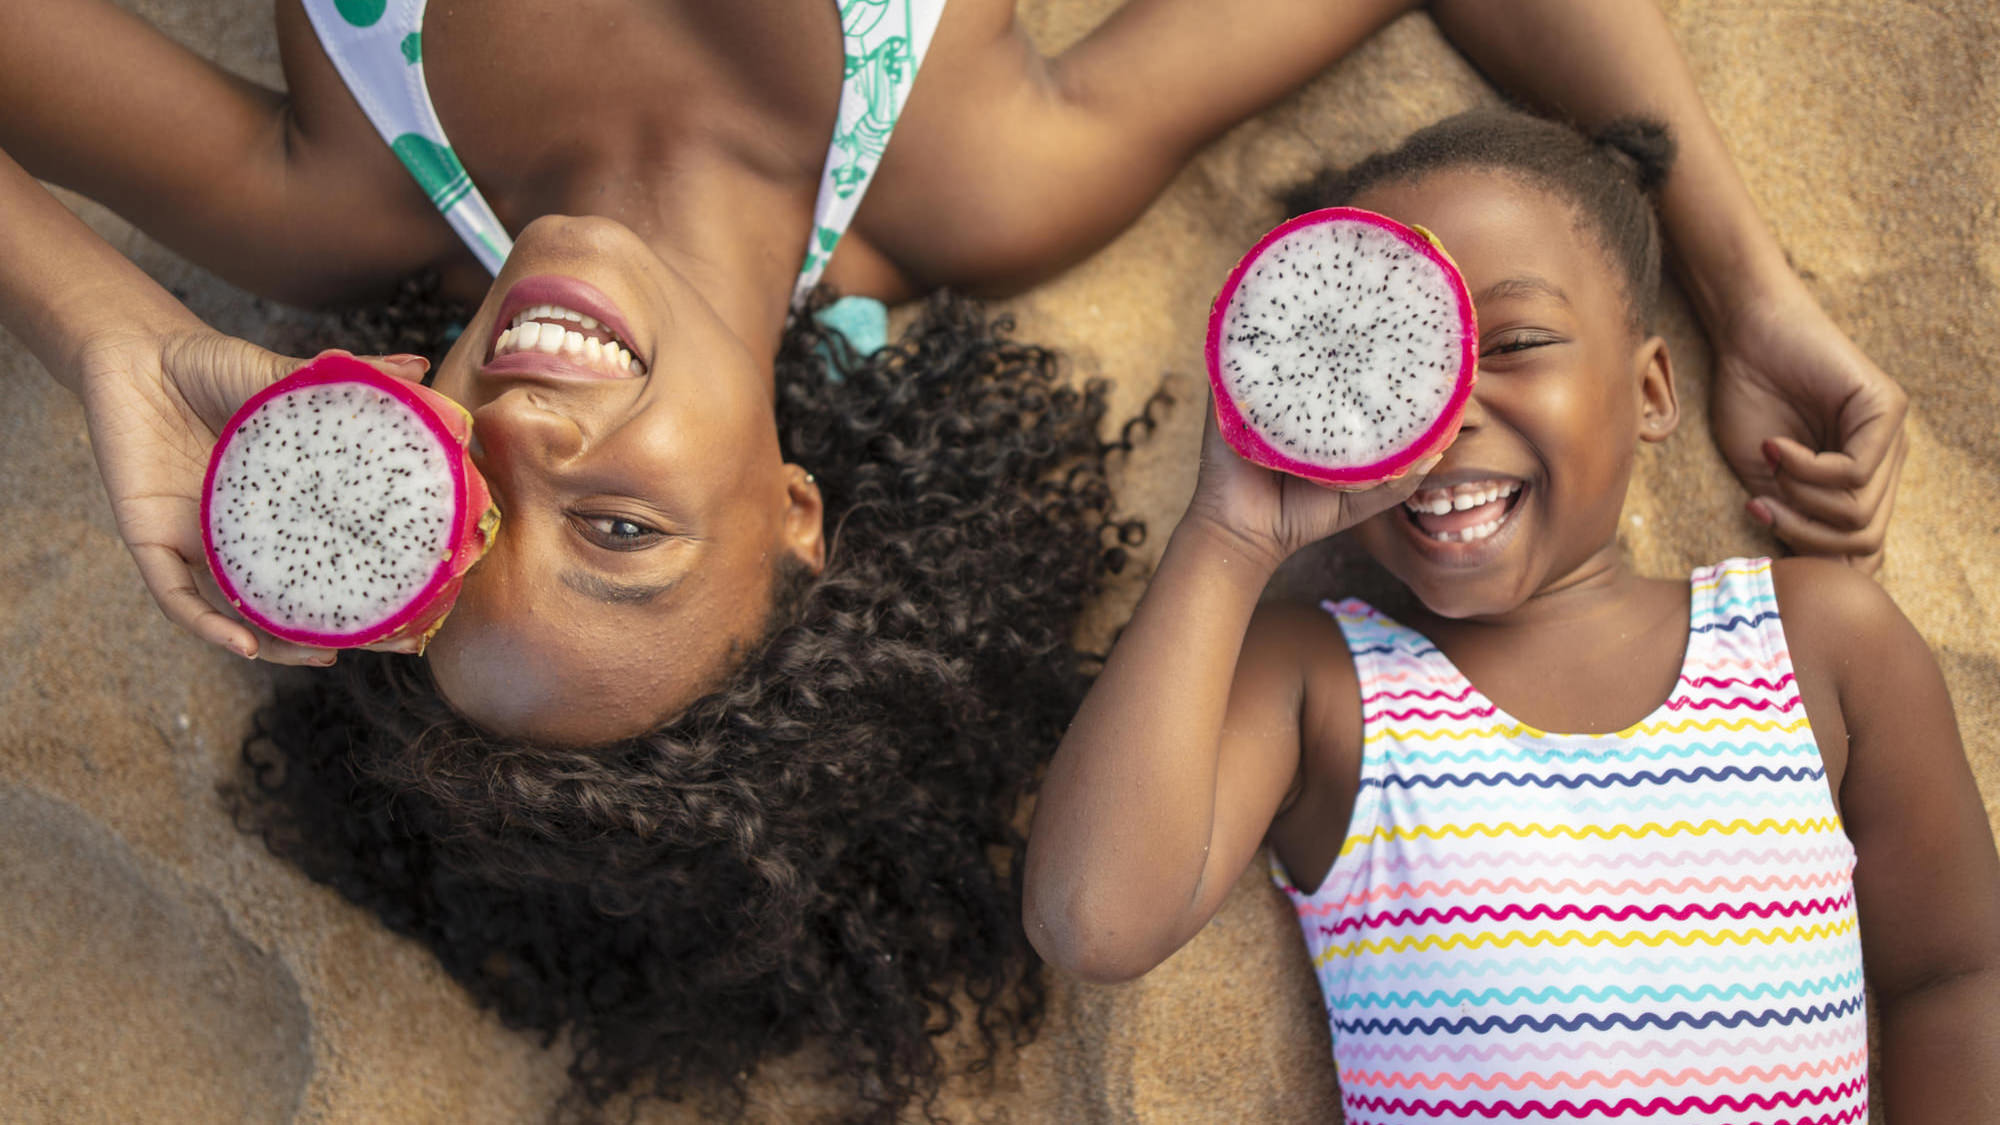 Image of mother and daughter having fun on the beach for Tsogo Sun's Image Library & Content Library by Michelle Wastie Photography